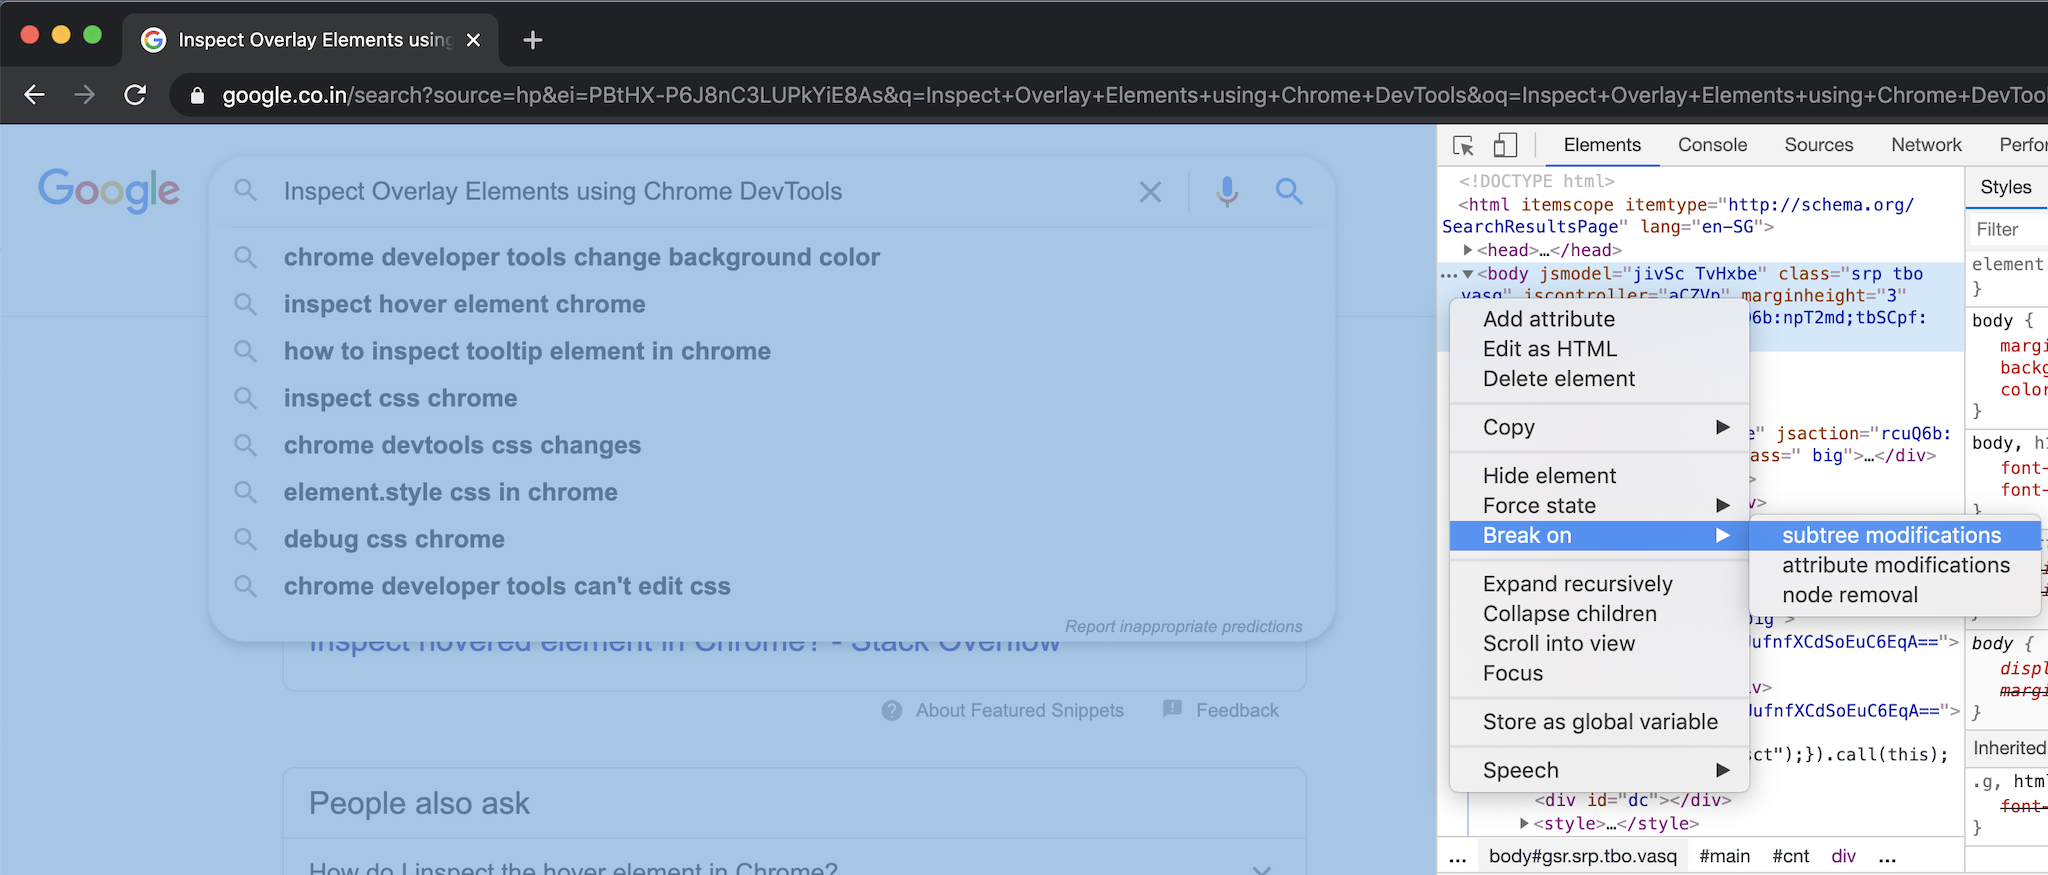 Chrome DevTool Break on Subtree Modifications